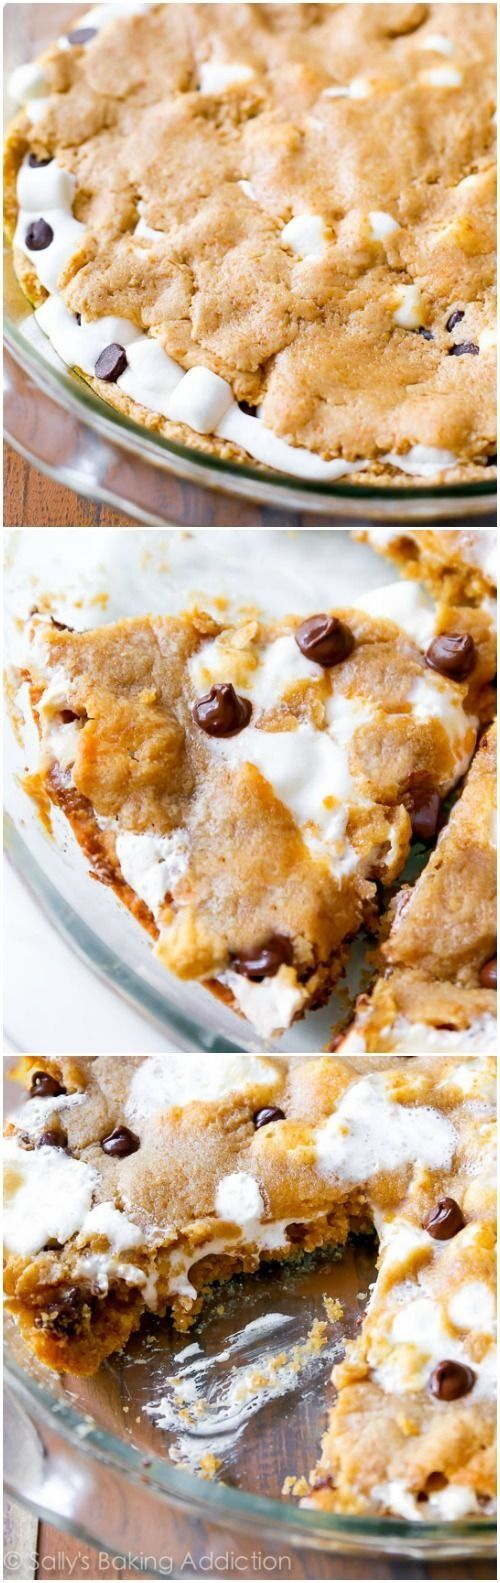 This soft and irresistible S'mores Chocolate Chip Cookie Cake will leave everyone begging you for the recipe!